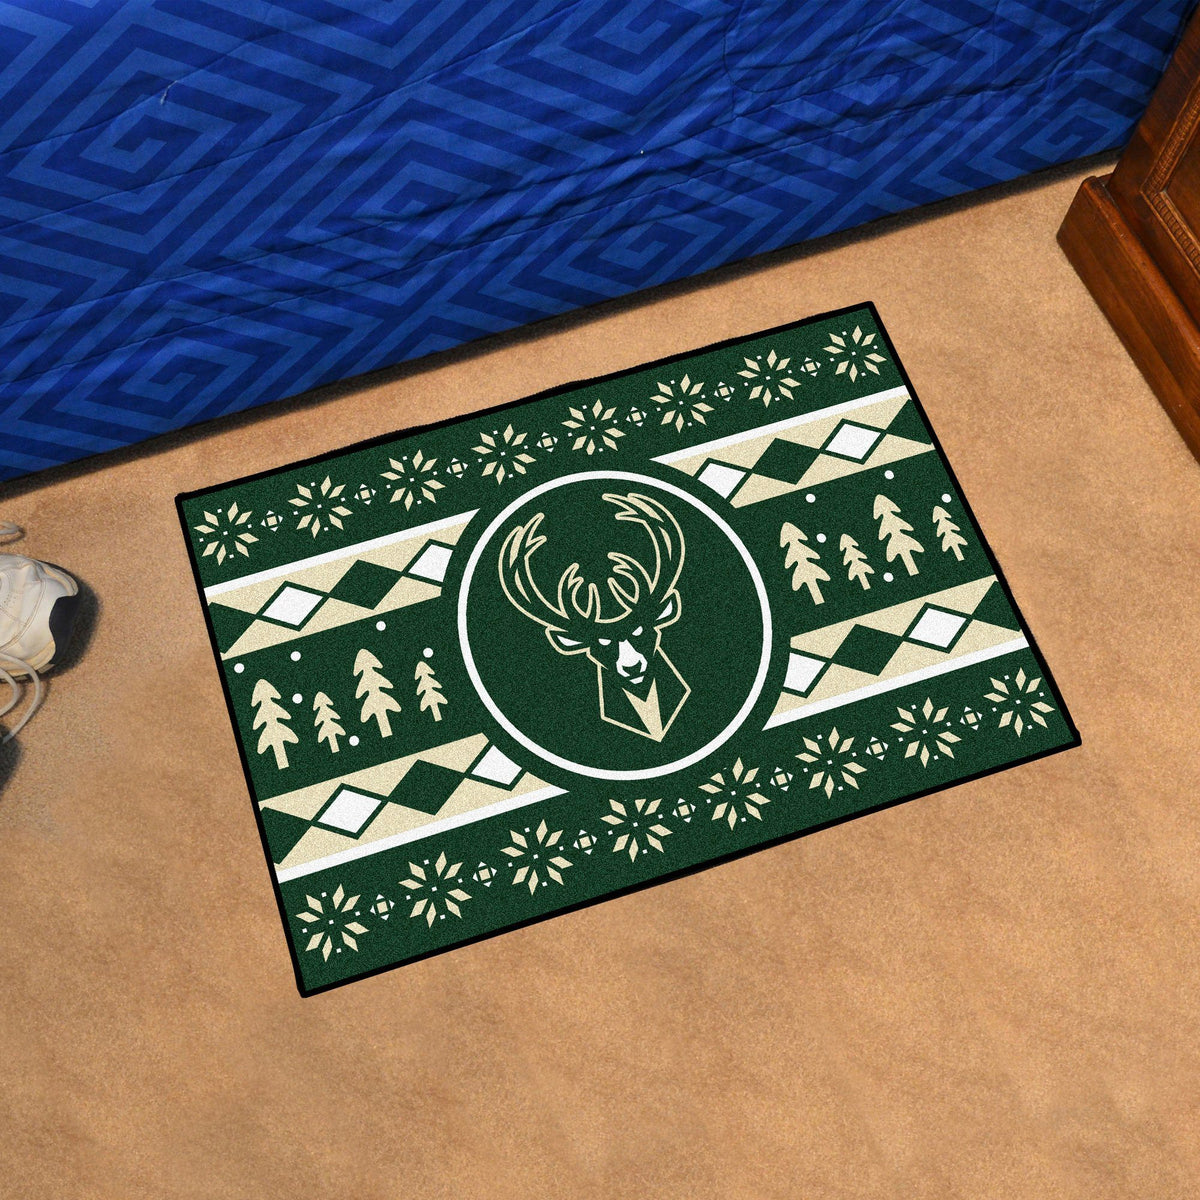 NBA - Holiday Sweater Starter Mat NBA Mats, Rectangular Mats, Holiday Sweater Starter Mat, NBA, Home Fan Mats Milwaukee Bucks